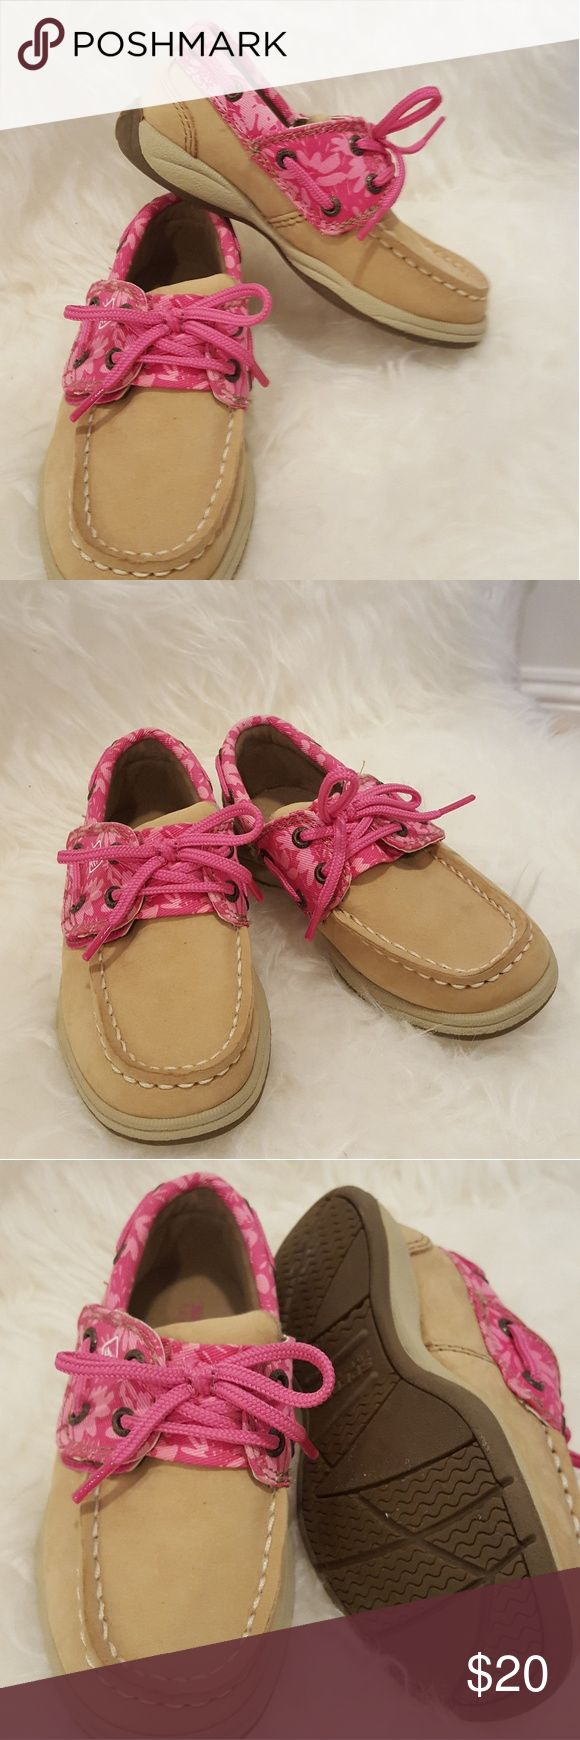 Kids Sperry's shoes size8.5 Adorable girl Sperry's shoes in size 8.5. Never been worn, new without tags nor box due to moving. So adorable, so sad that my daughter can't wear it since it's too small for her now! Brand new! Sperry Top-Sider Shoes Moccasins